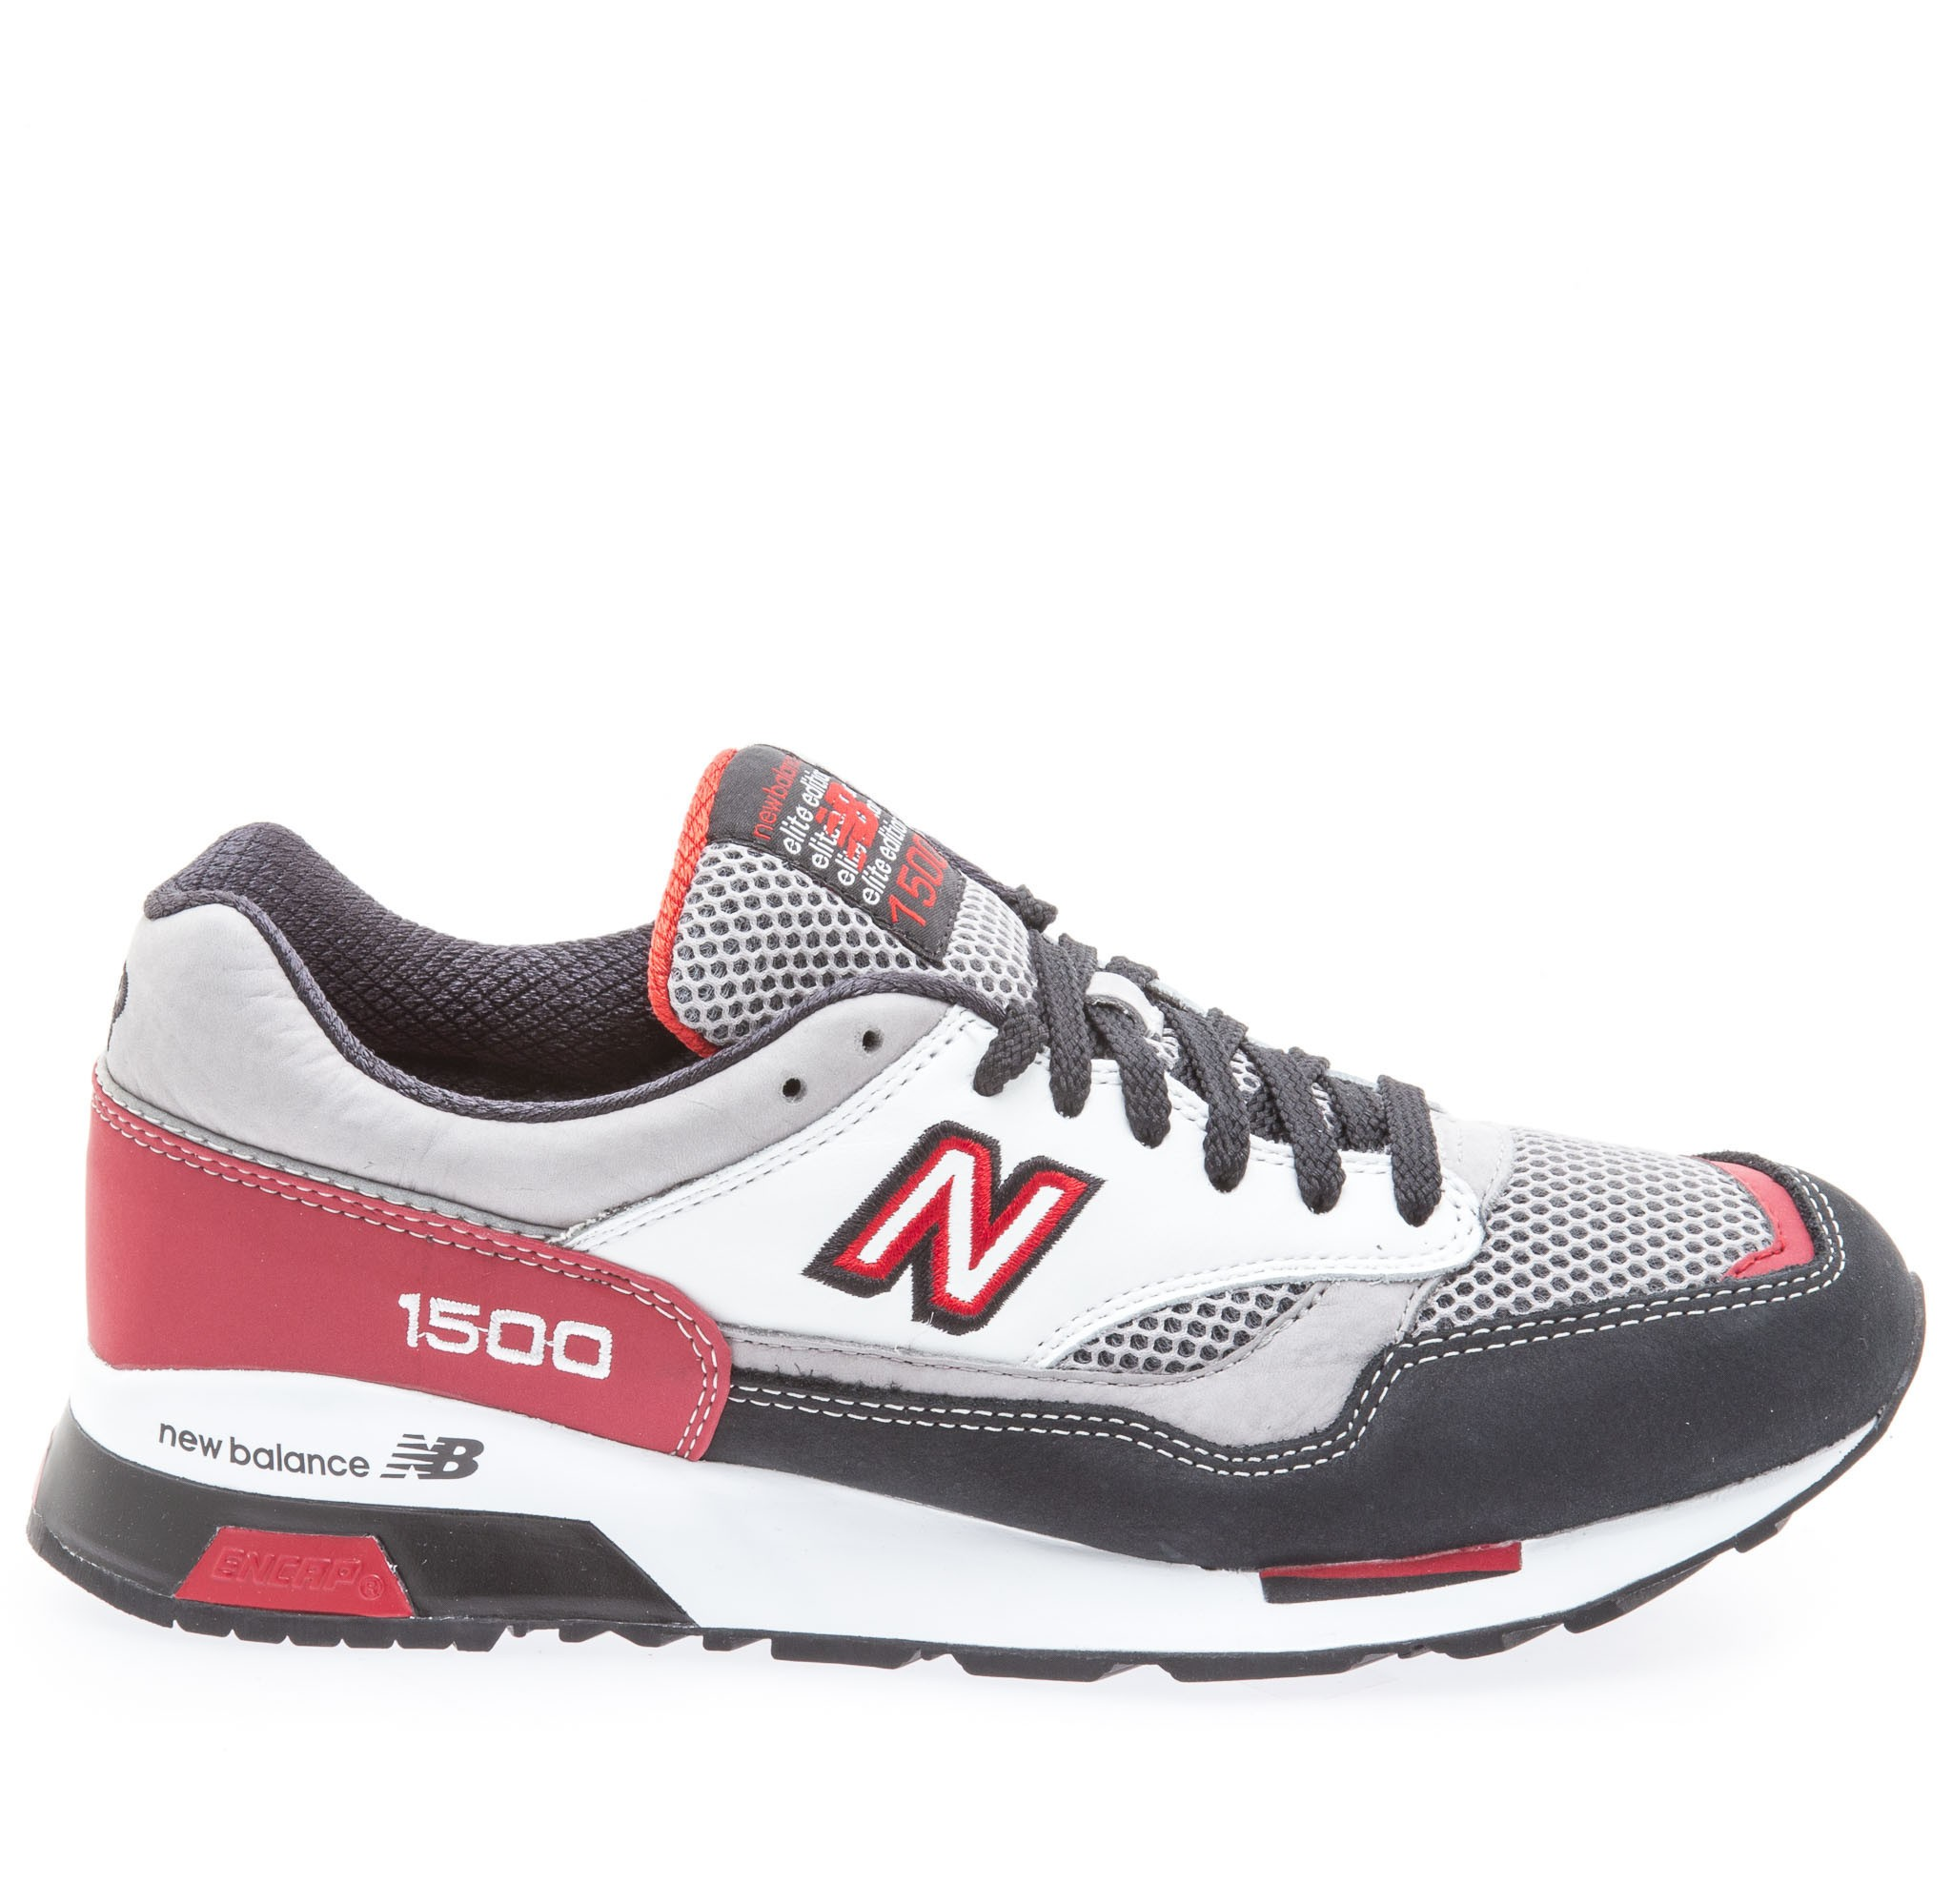 New Balance 1500 Elite Rider's Club Femme Trainers Anthracite Gris Rouge